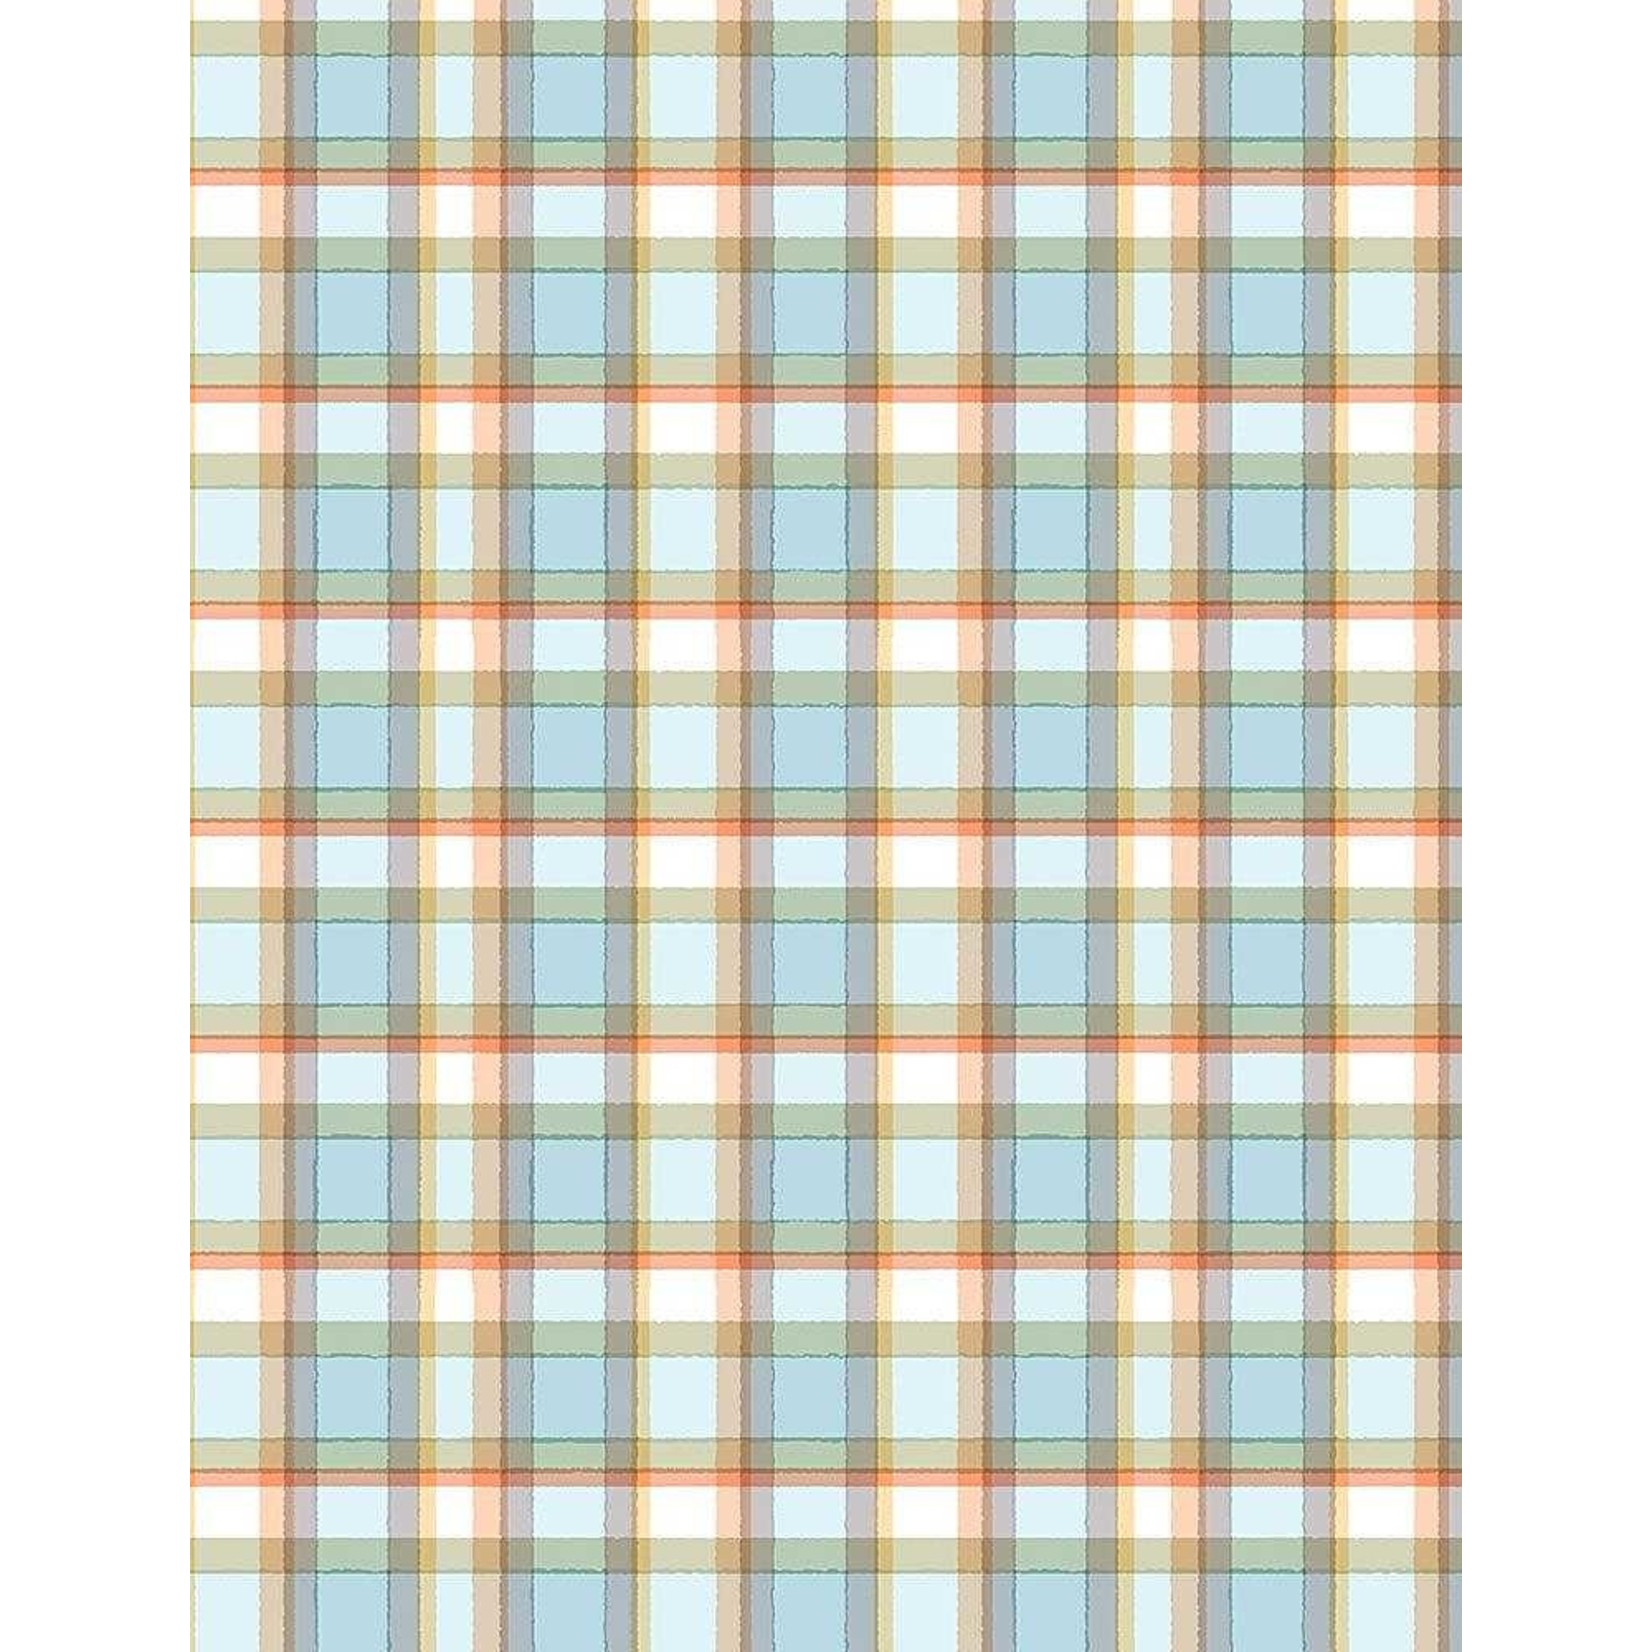 TIMELESS TREASURES Snow Day, Flannel, Winter Plaid, per cm or $20/m